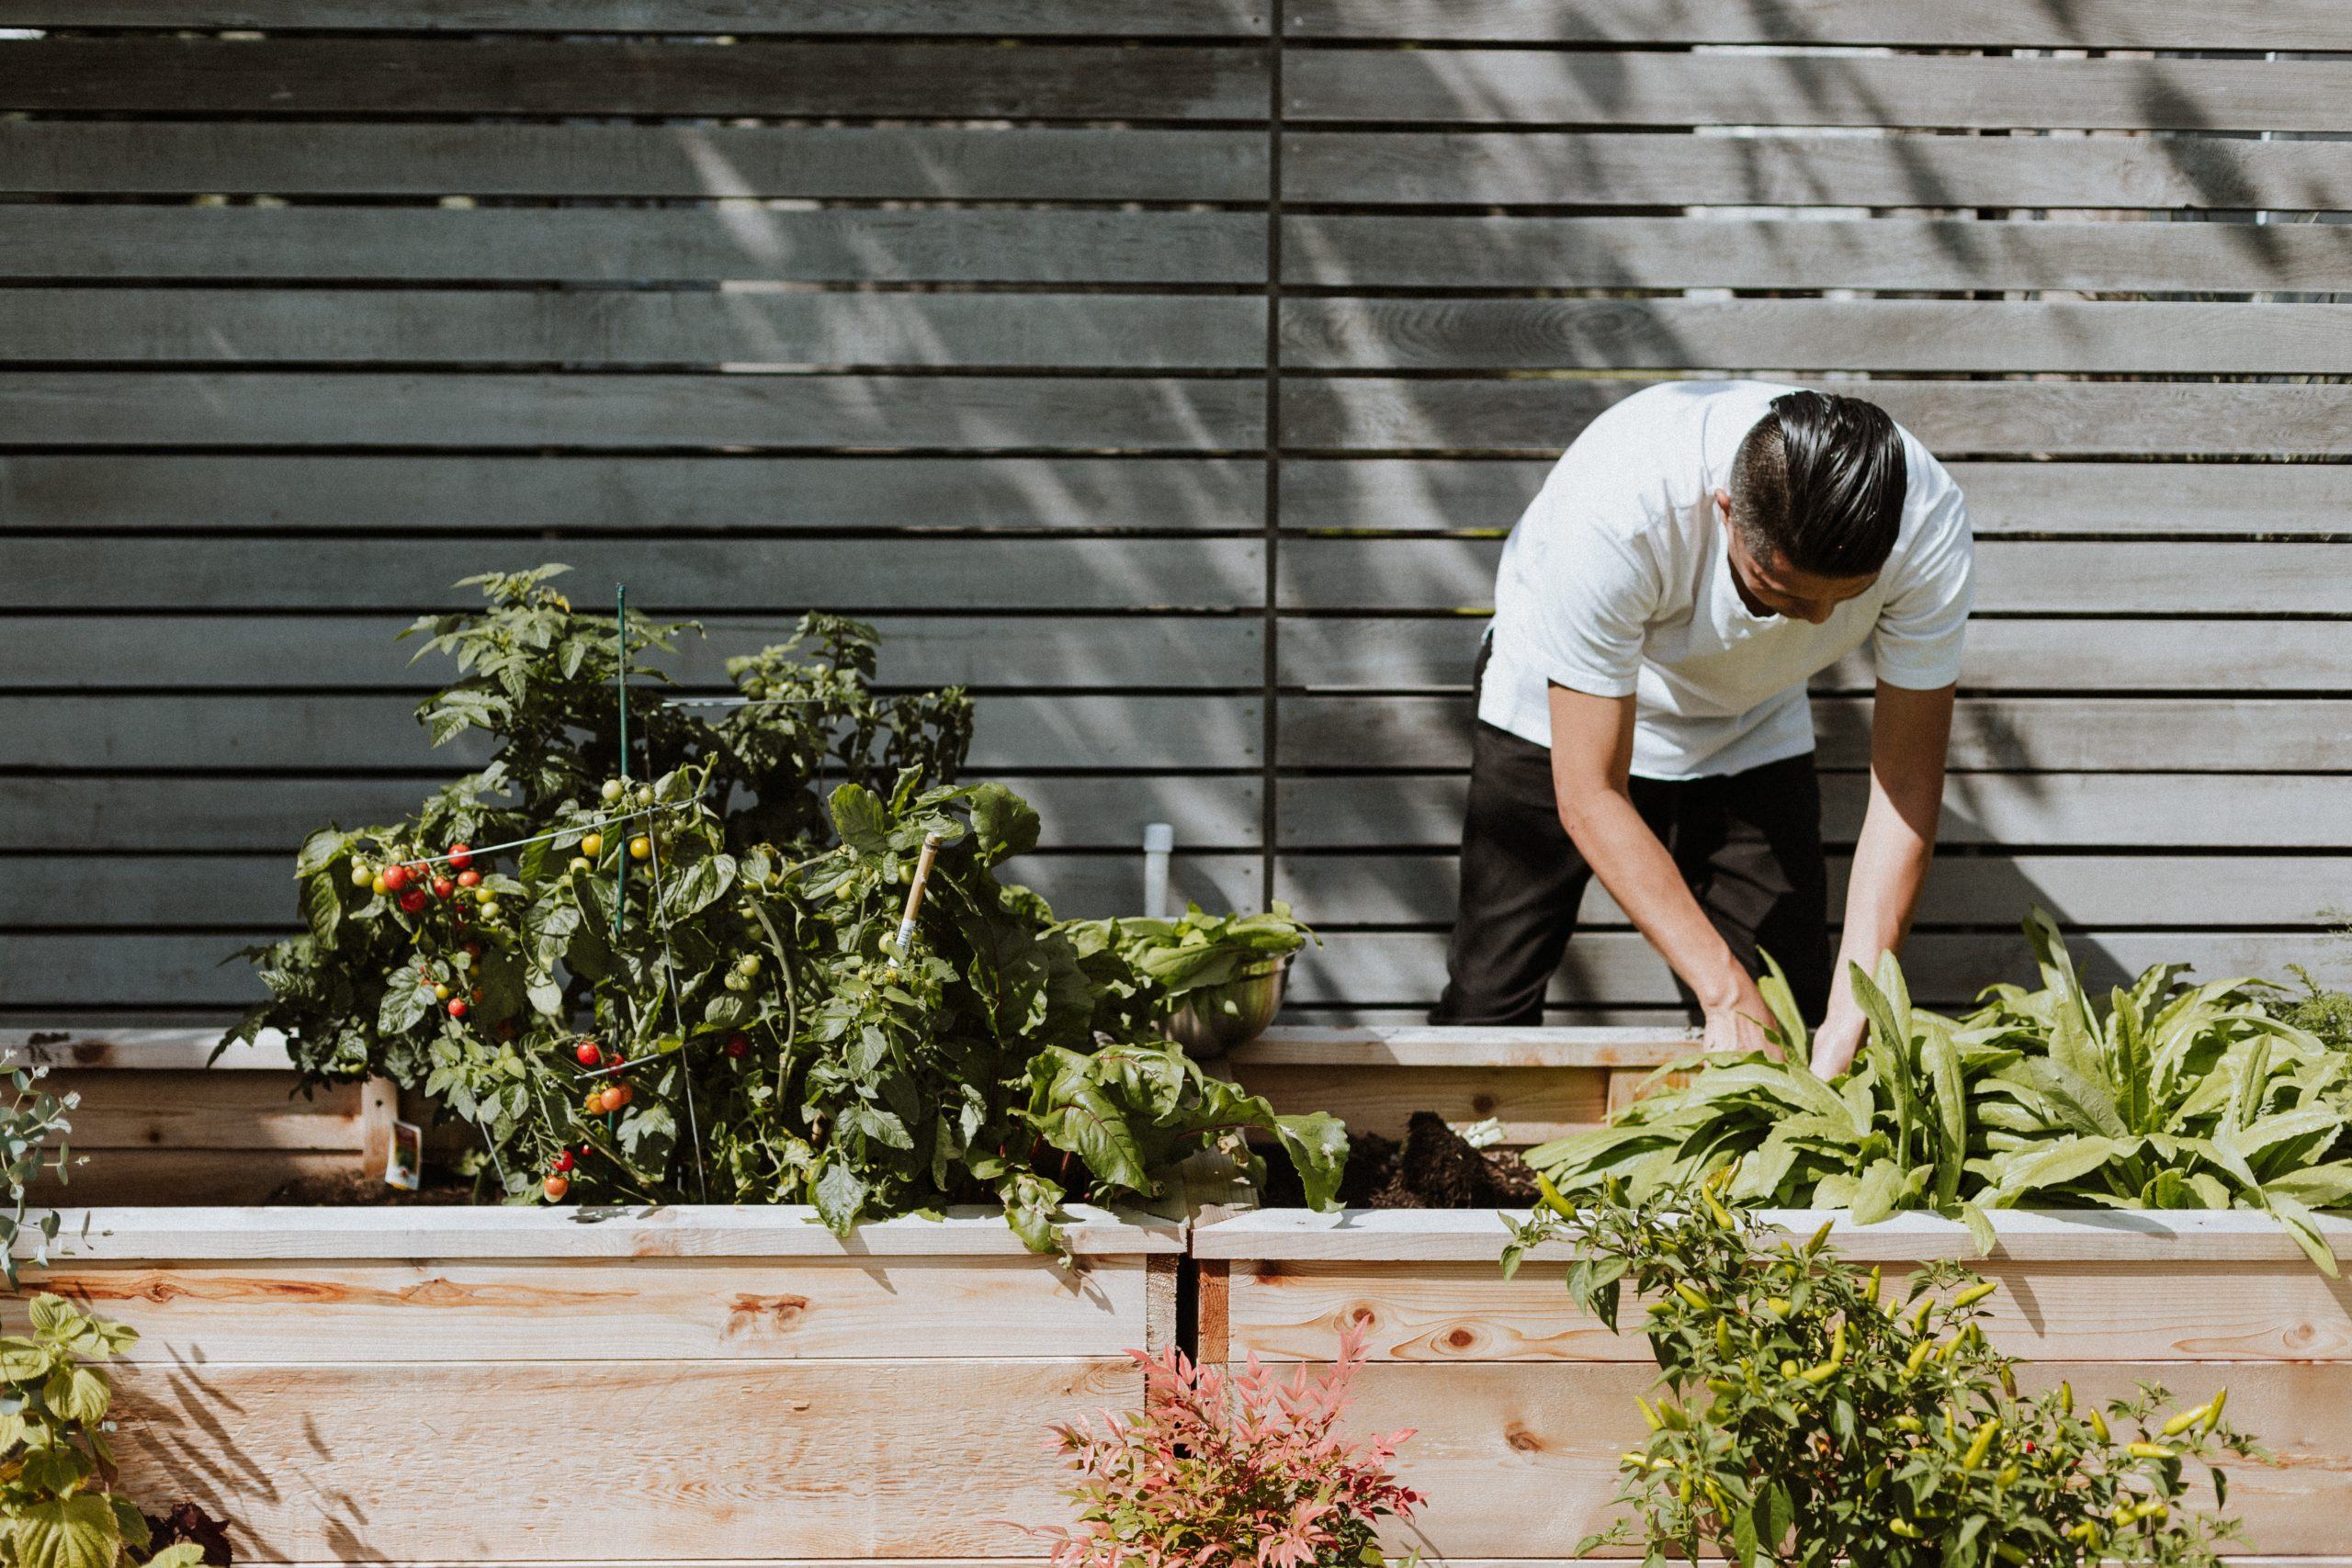 How gardening can reduce anxiety